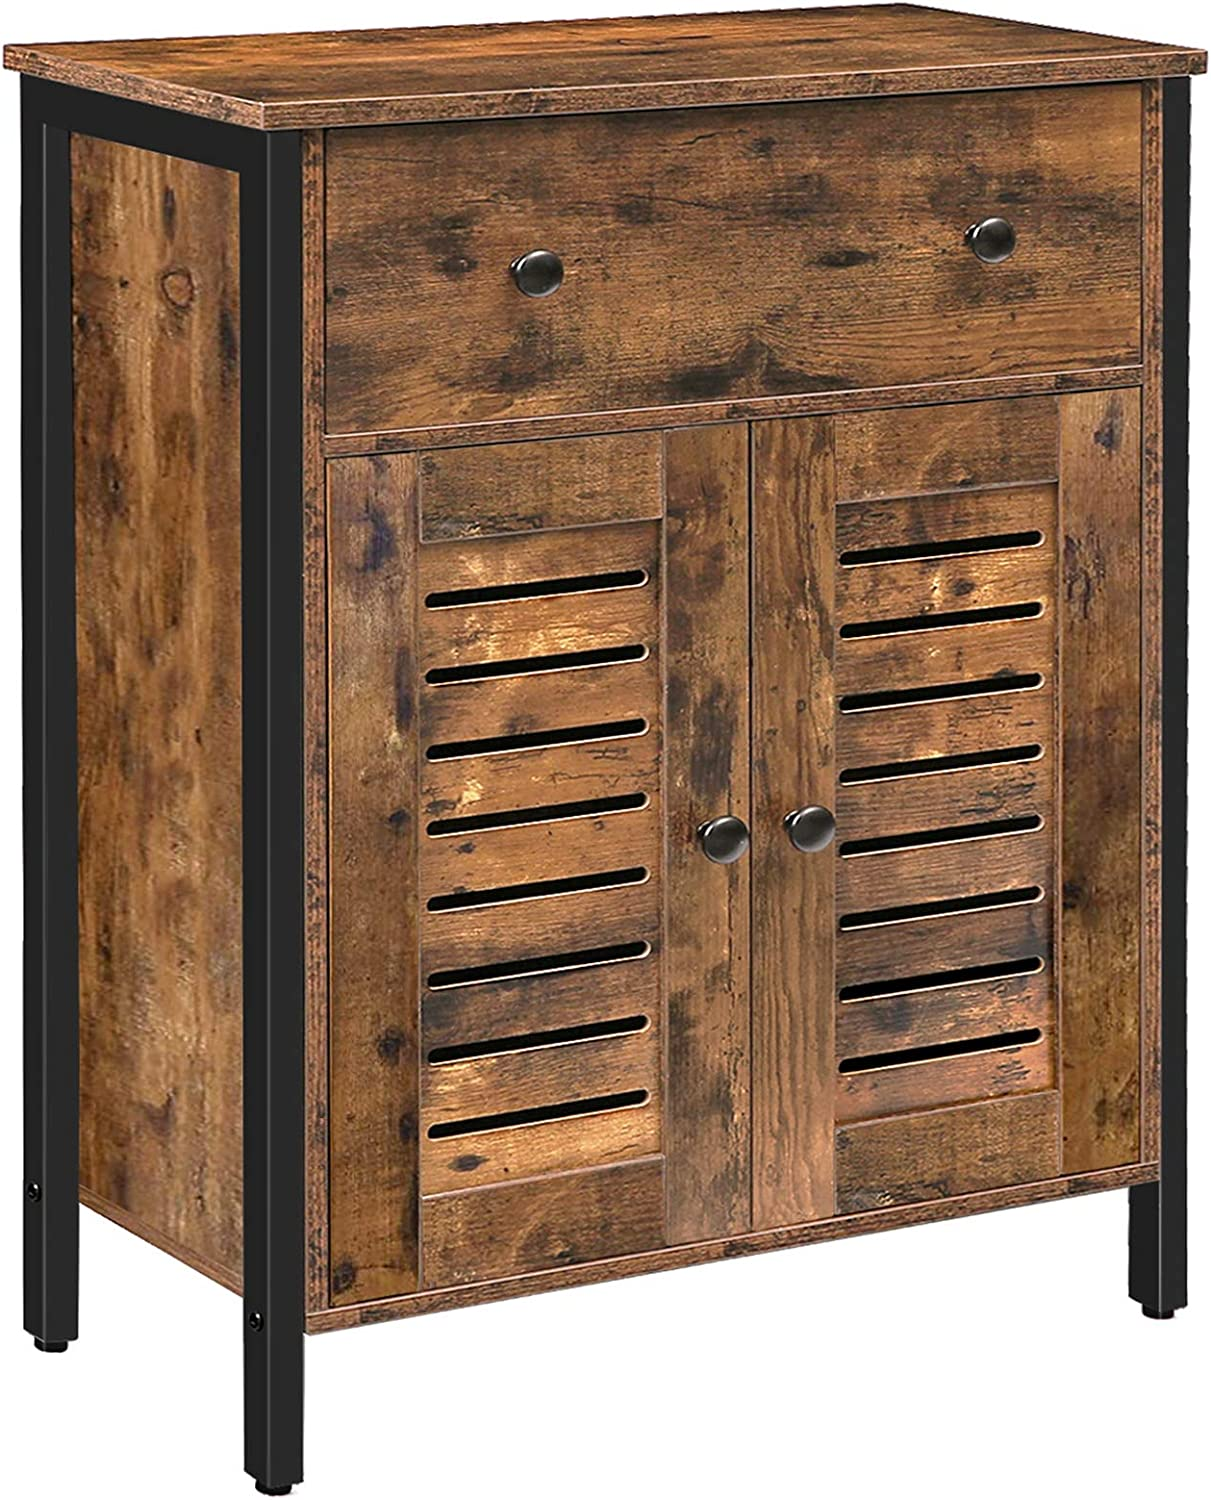 HOOBRO Kitchen Sideboard Manufacturer regenerated product Floor with Ranking TOP11 Storage Cabinet Dra